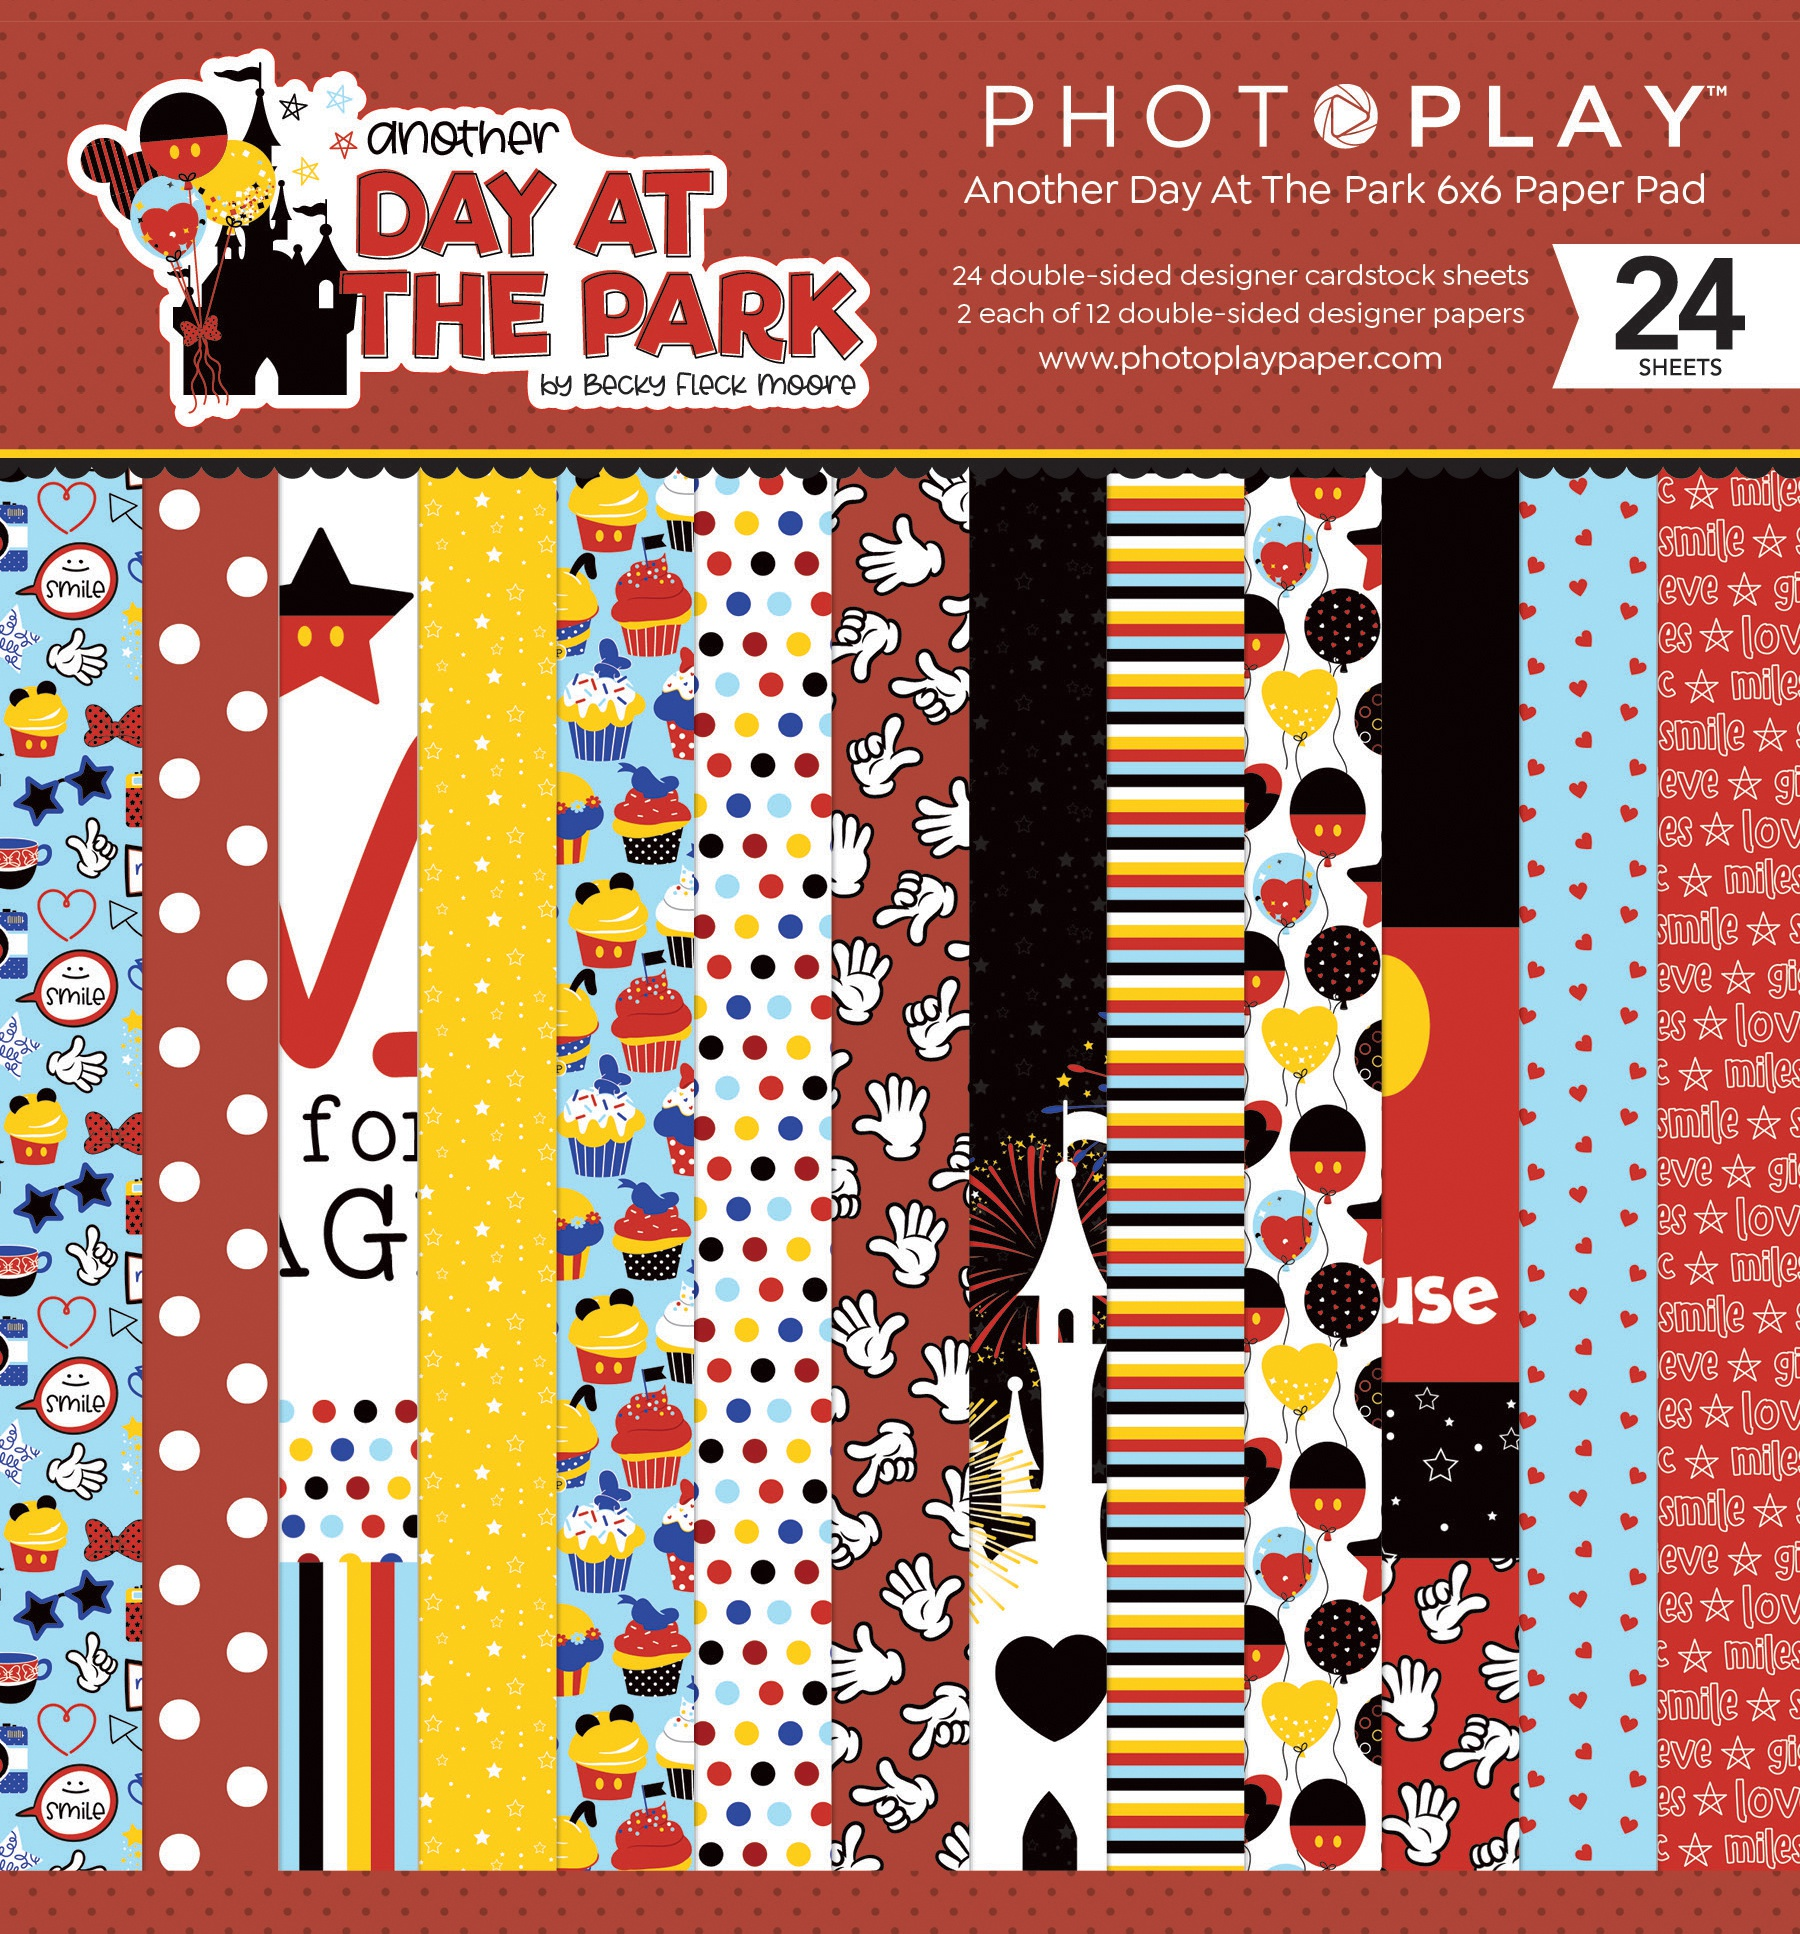 PhotoPlay Double-Sided Paper Pad 6X6 24/Pkg-Another Day At The Park